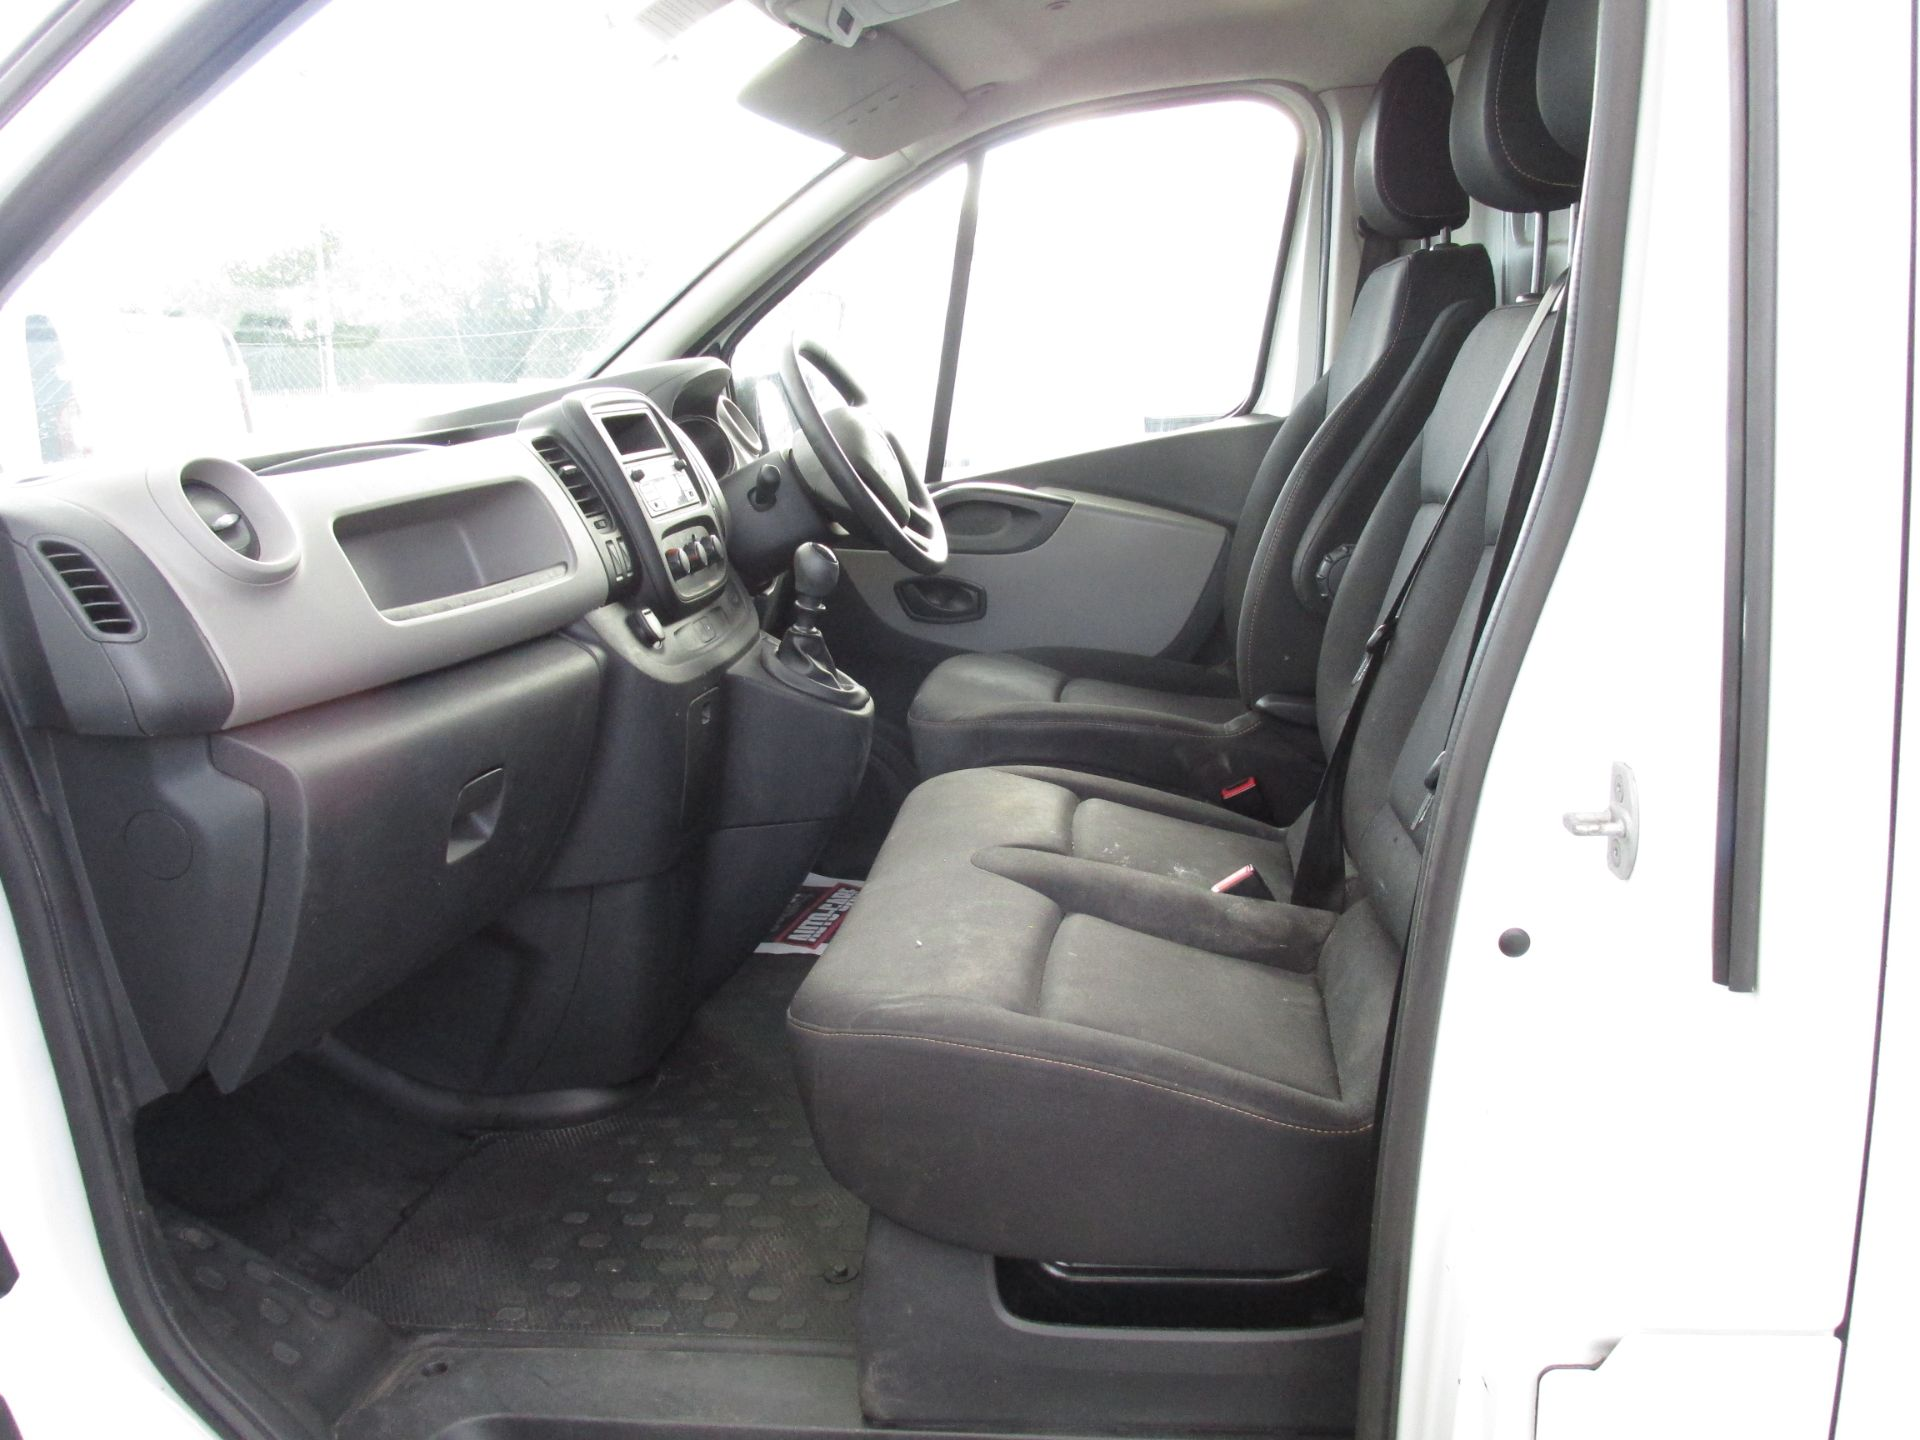 2017 Renault Trafic LL29 DCI 120 Business 3DR (171D23040) Image 11